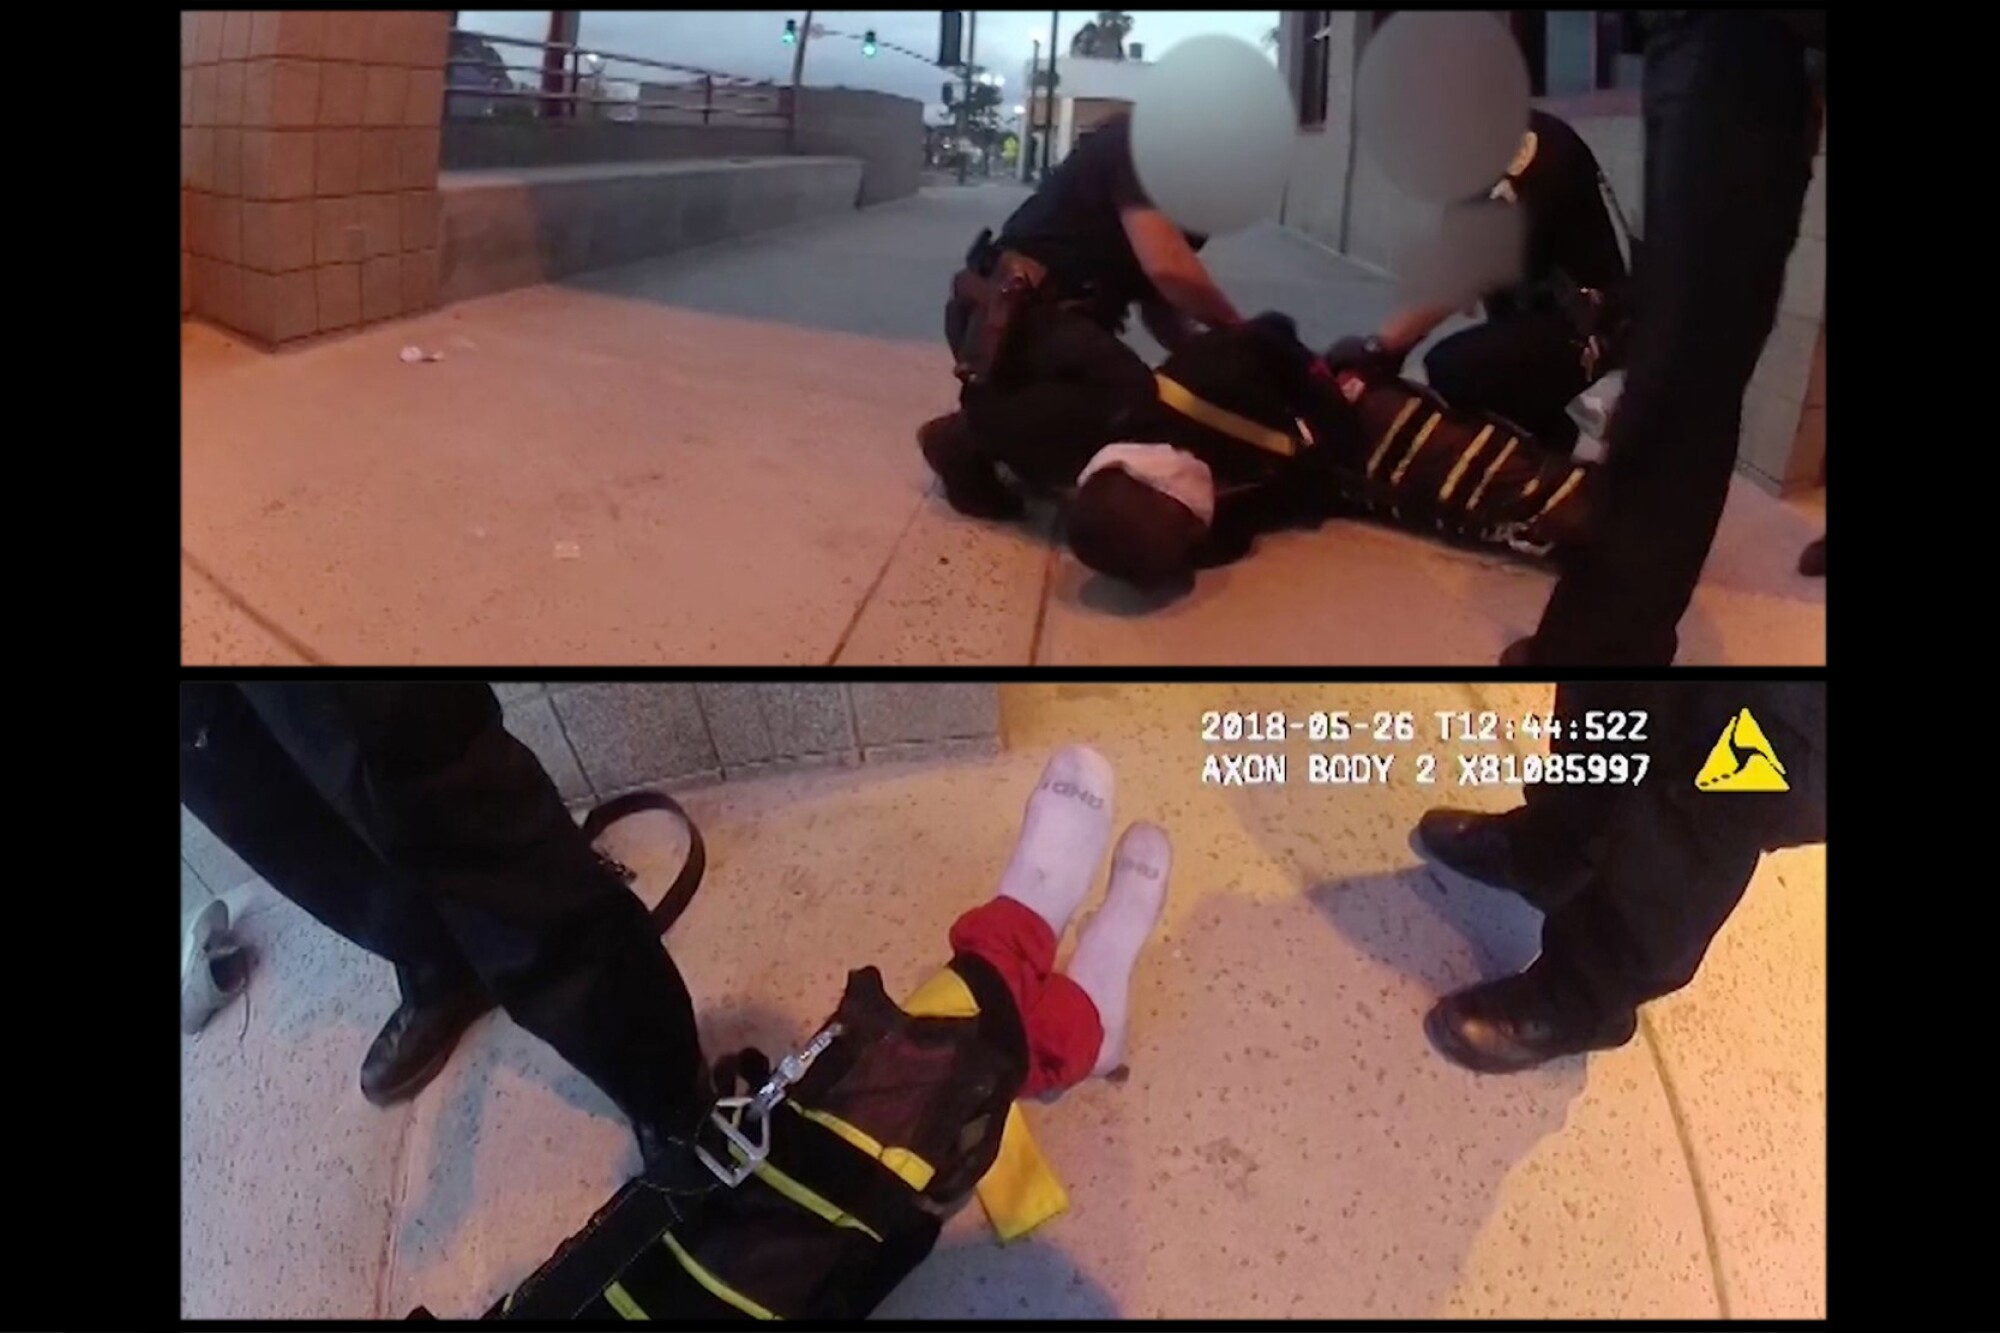 Screen shot from video released by the District Attorney's Office shows Earl McNeil handcuffed and restrained by The Wrap, a device police departments across the country are using to restrain subjects.